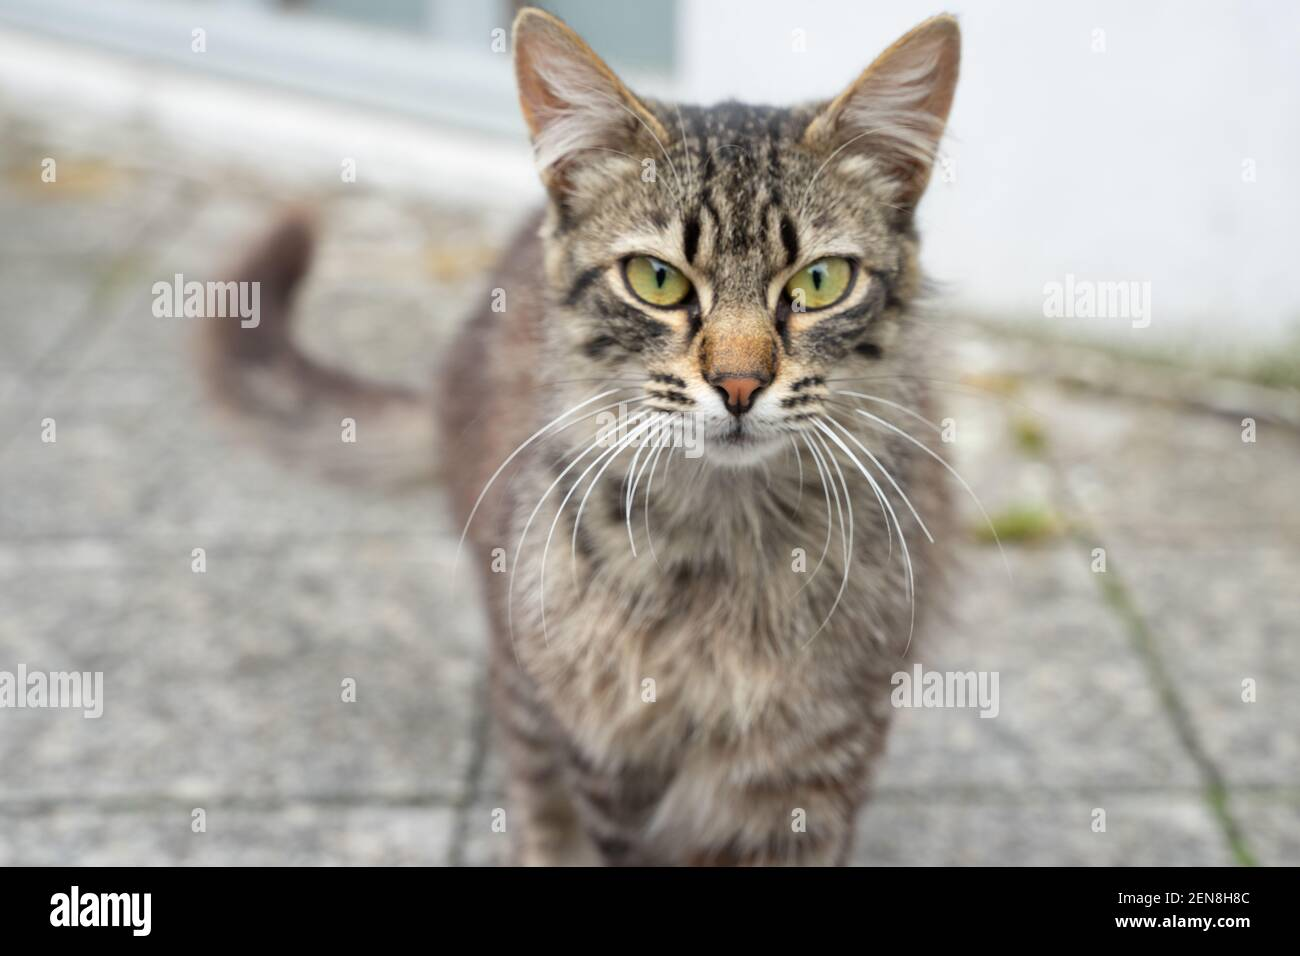 A tabby cat walking towards the camera; mid-shot with the blurred background Stock Photo